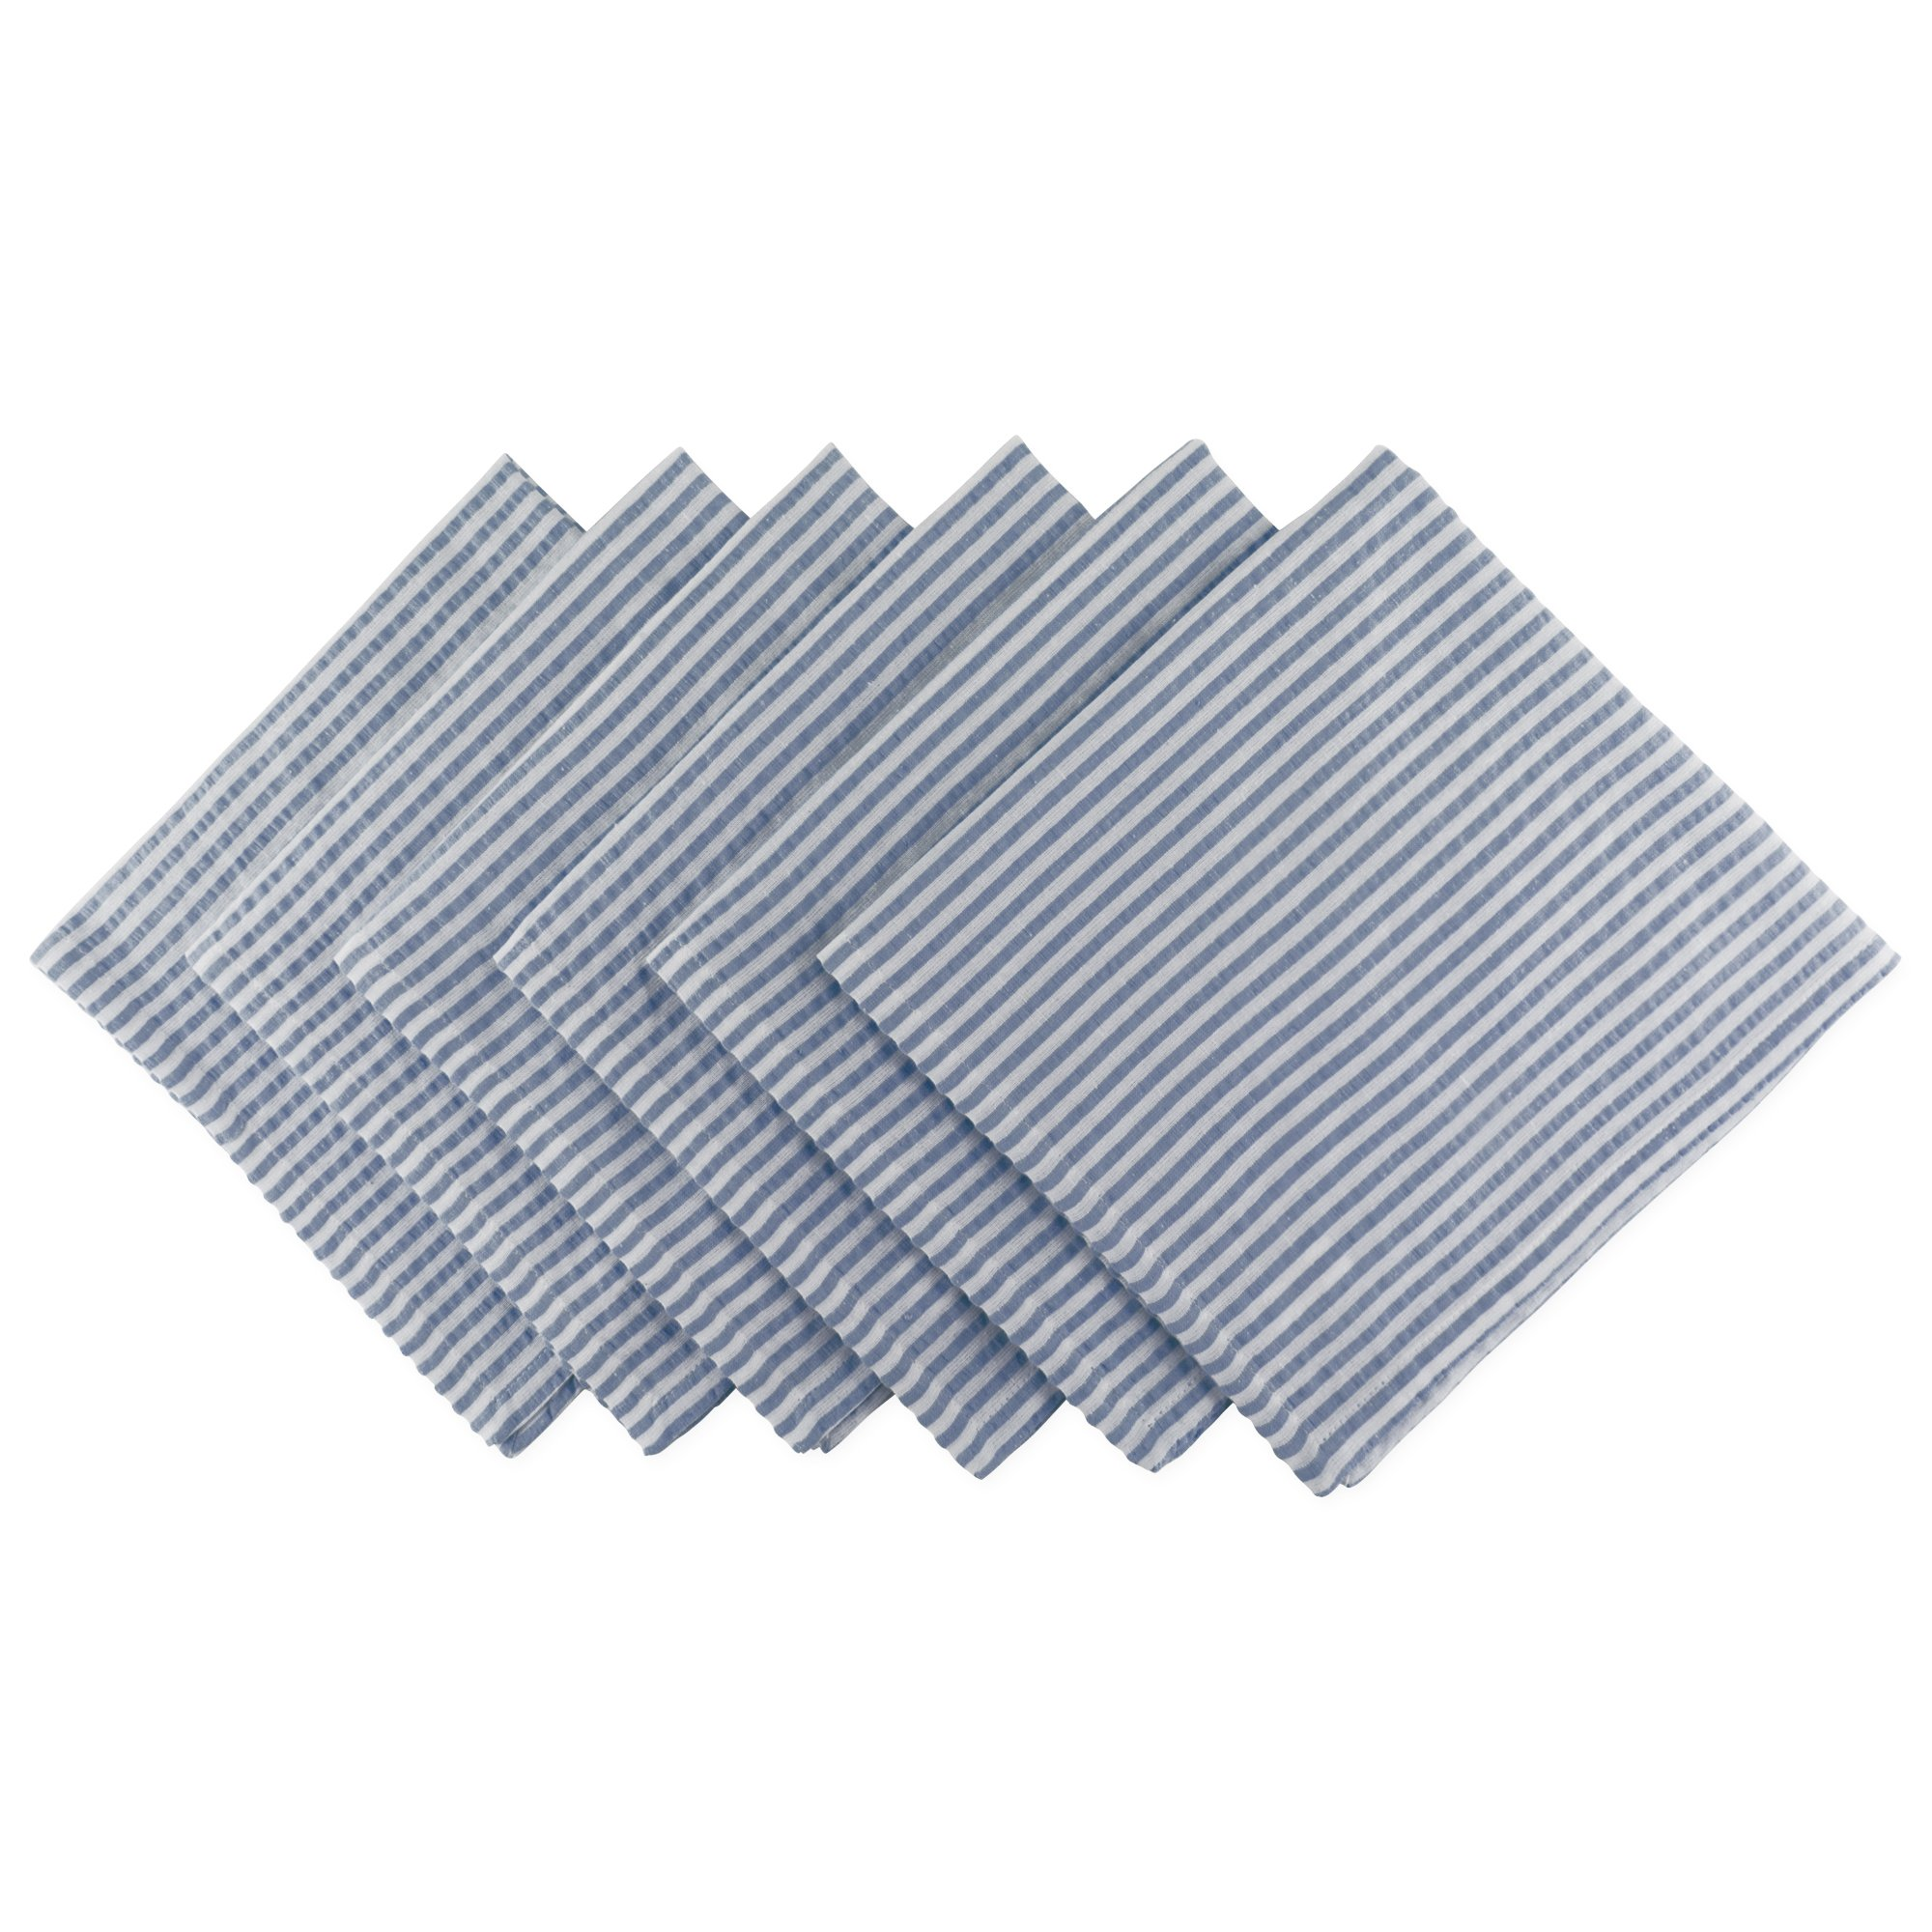 DII Cotton Seersucker Striped Napkin for Brunch, Weddings, Showers, Parties and Everyday Use, 20 x 20'', French Blue and White